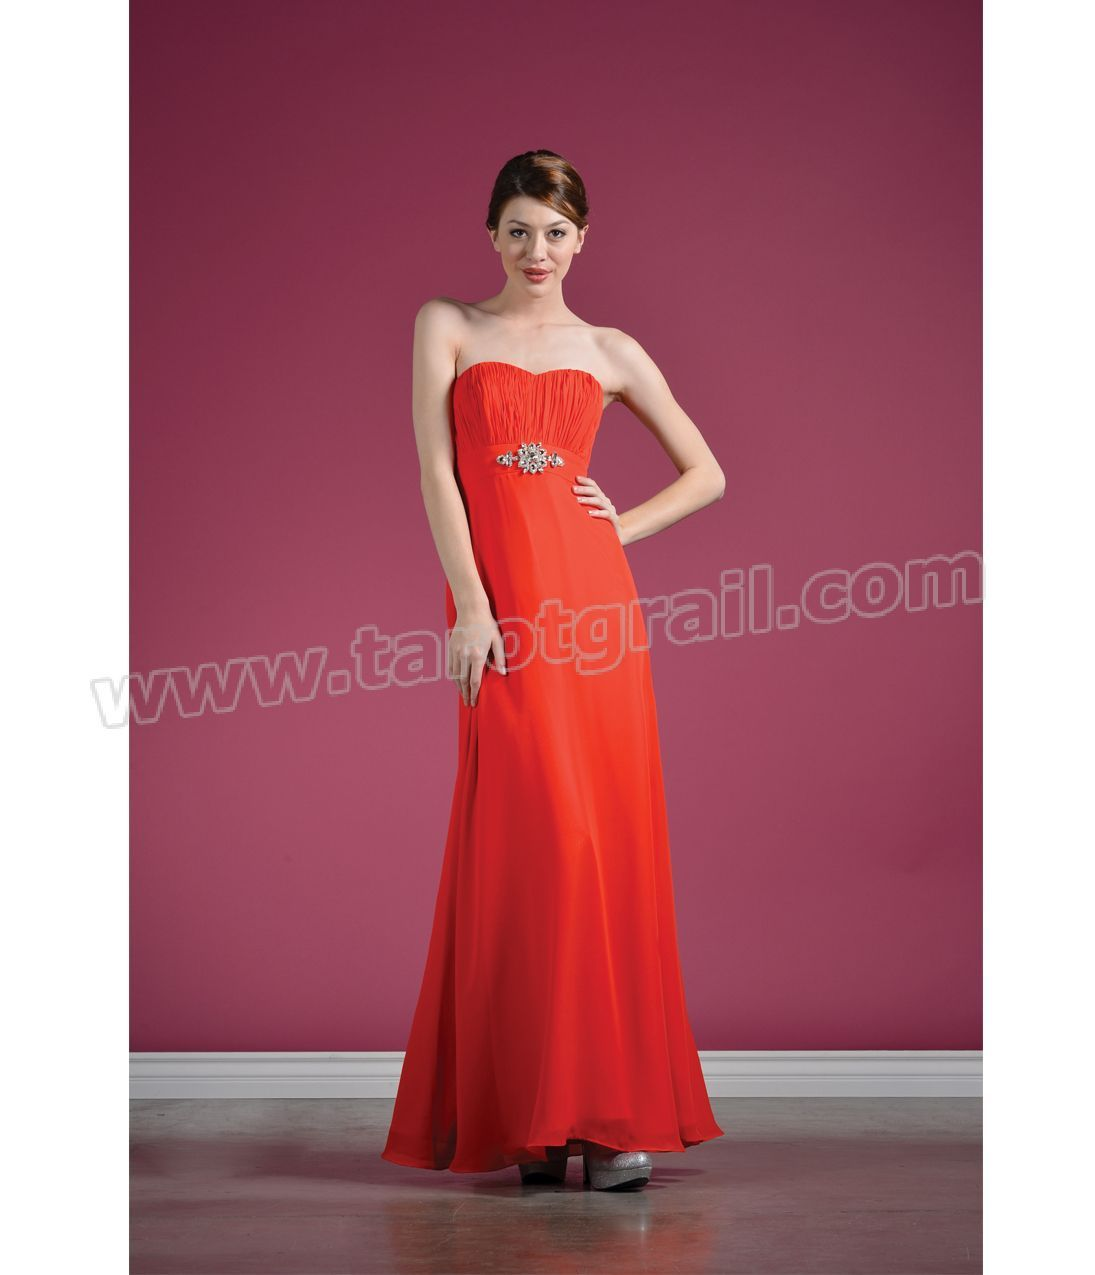 Orange sweetheart strapless chiffon prom dress strapless evening